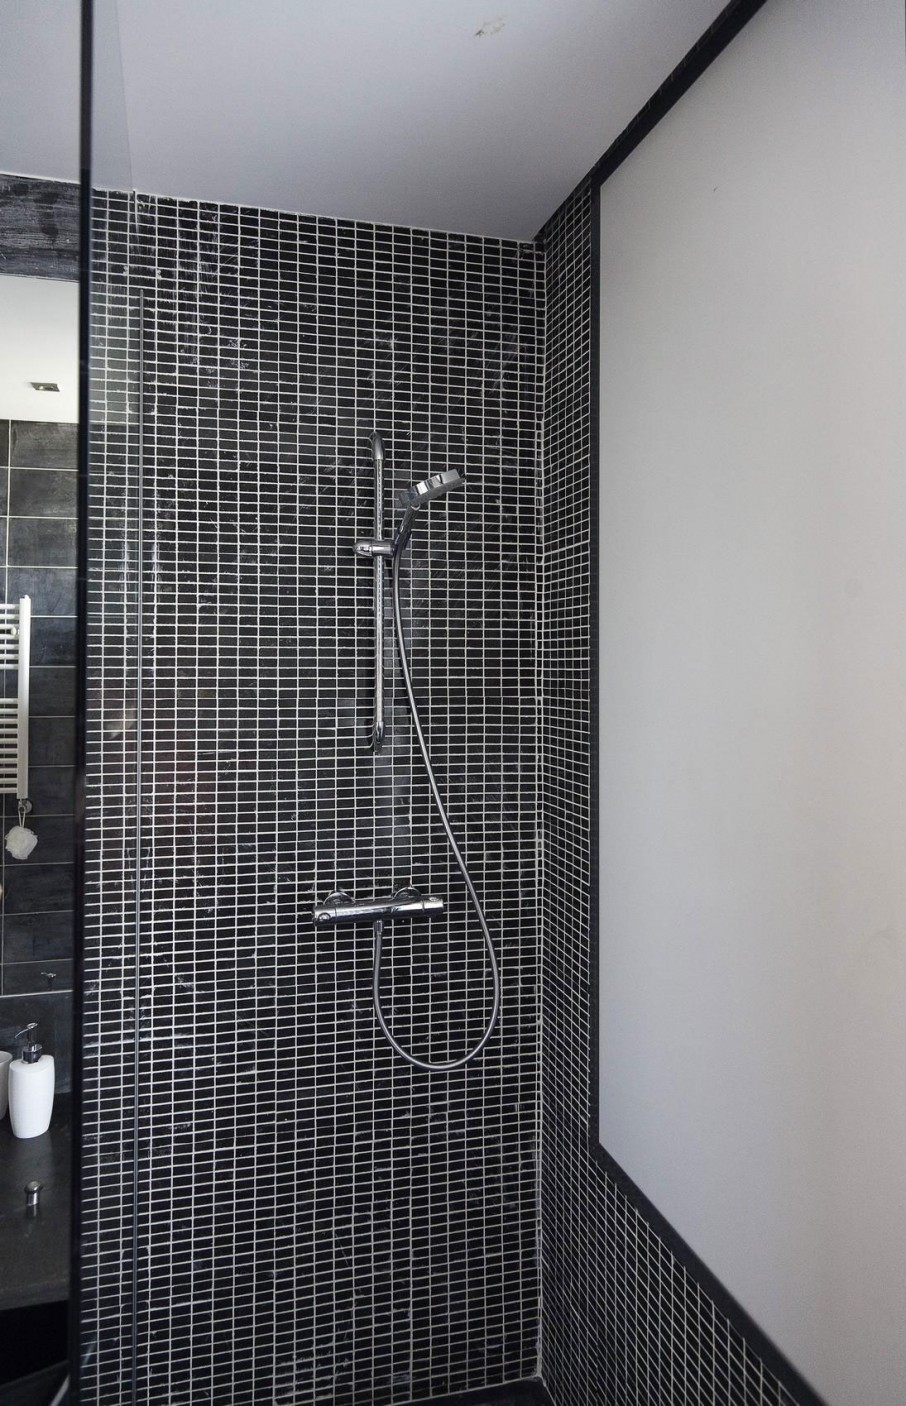 interior-bathroom-cool-bathroom-design-using-a-black-glass-mosaic-tiles-are-also-white-ceiling-and-thermostat-hand-shower-set-with-sliding-rail-with-wall-glass-tiles-and-bathroom-tile-decorating-idea